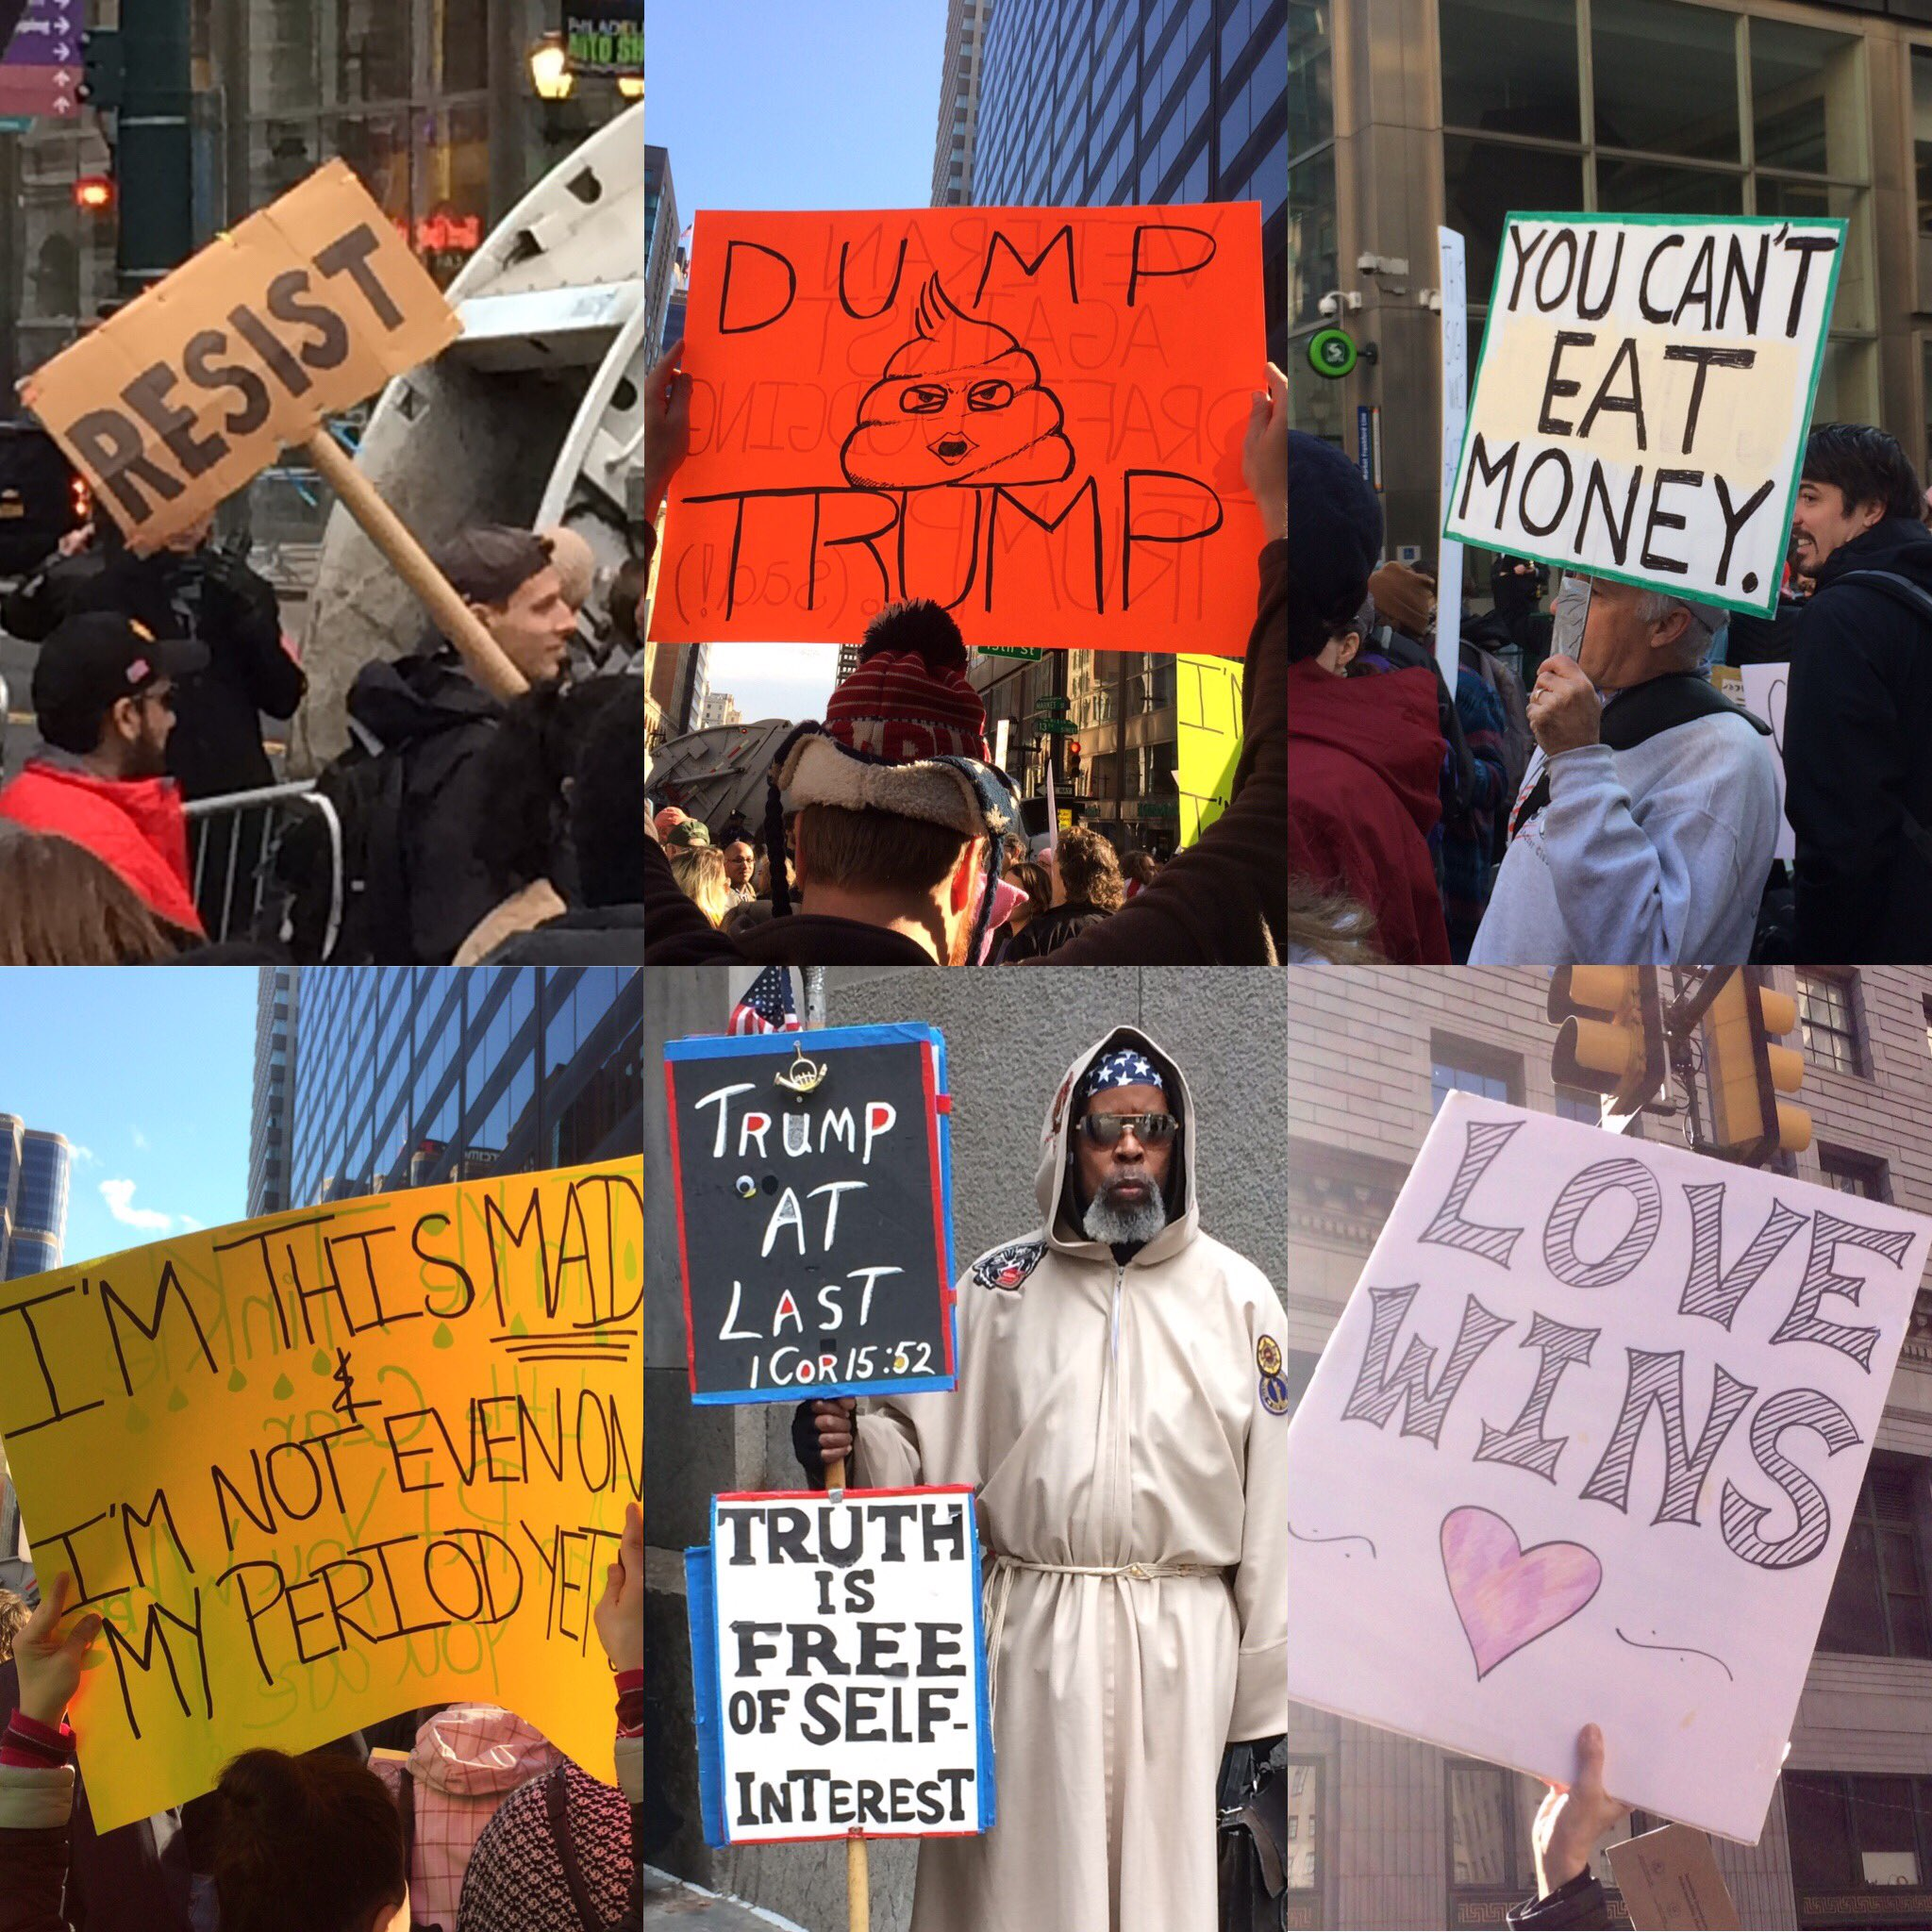 A few of the signs seen today outside #GOPretreat during @POTUS visit to #Philly #Trump #demonstrators https://t.co/VR6O0Vkoes